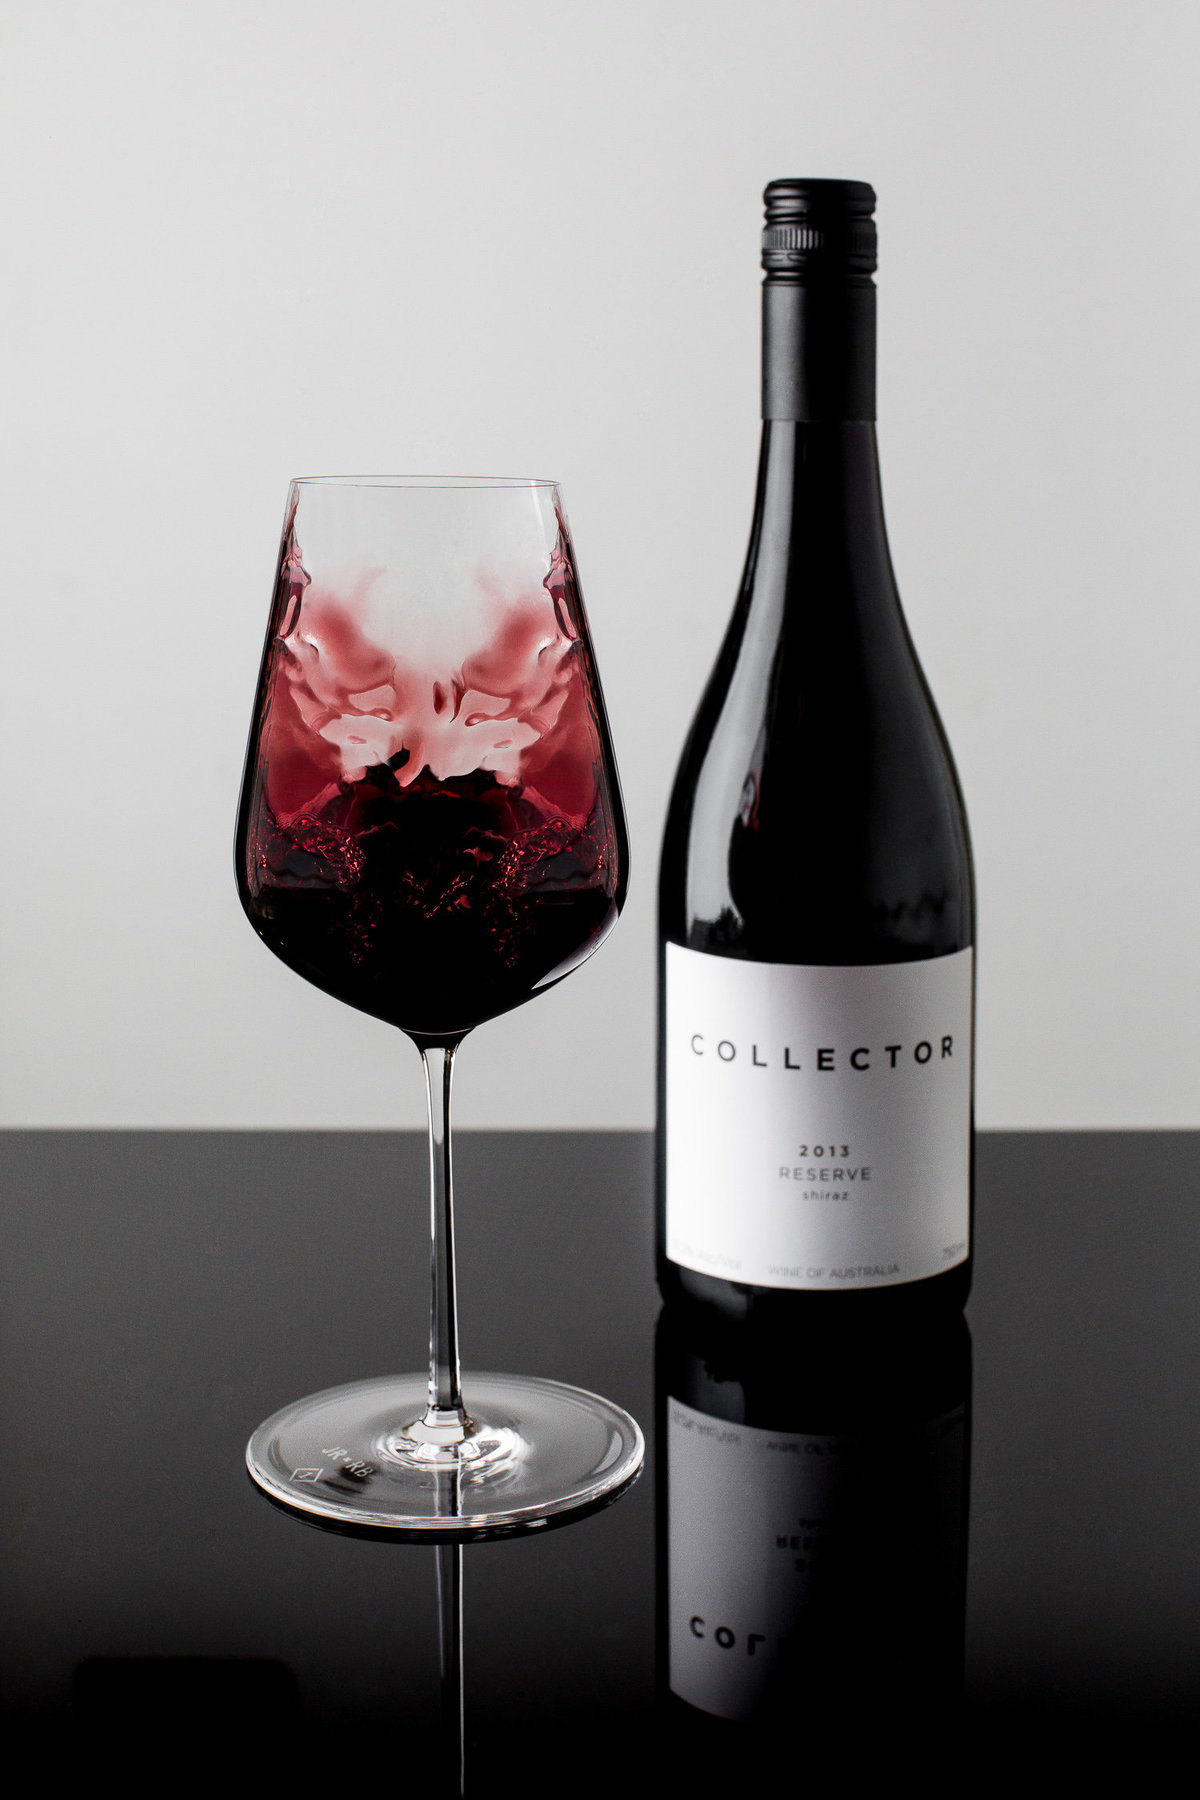 Collector - Product Wine Shots - Anisa Sabet - Photographer-247